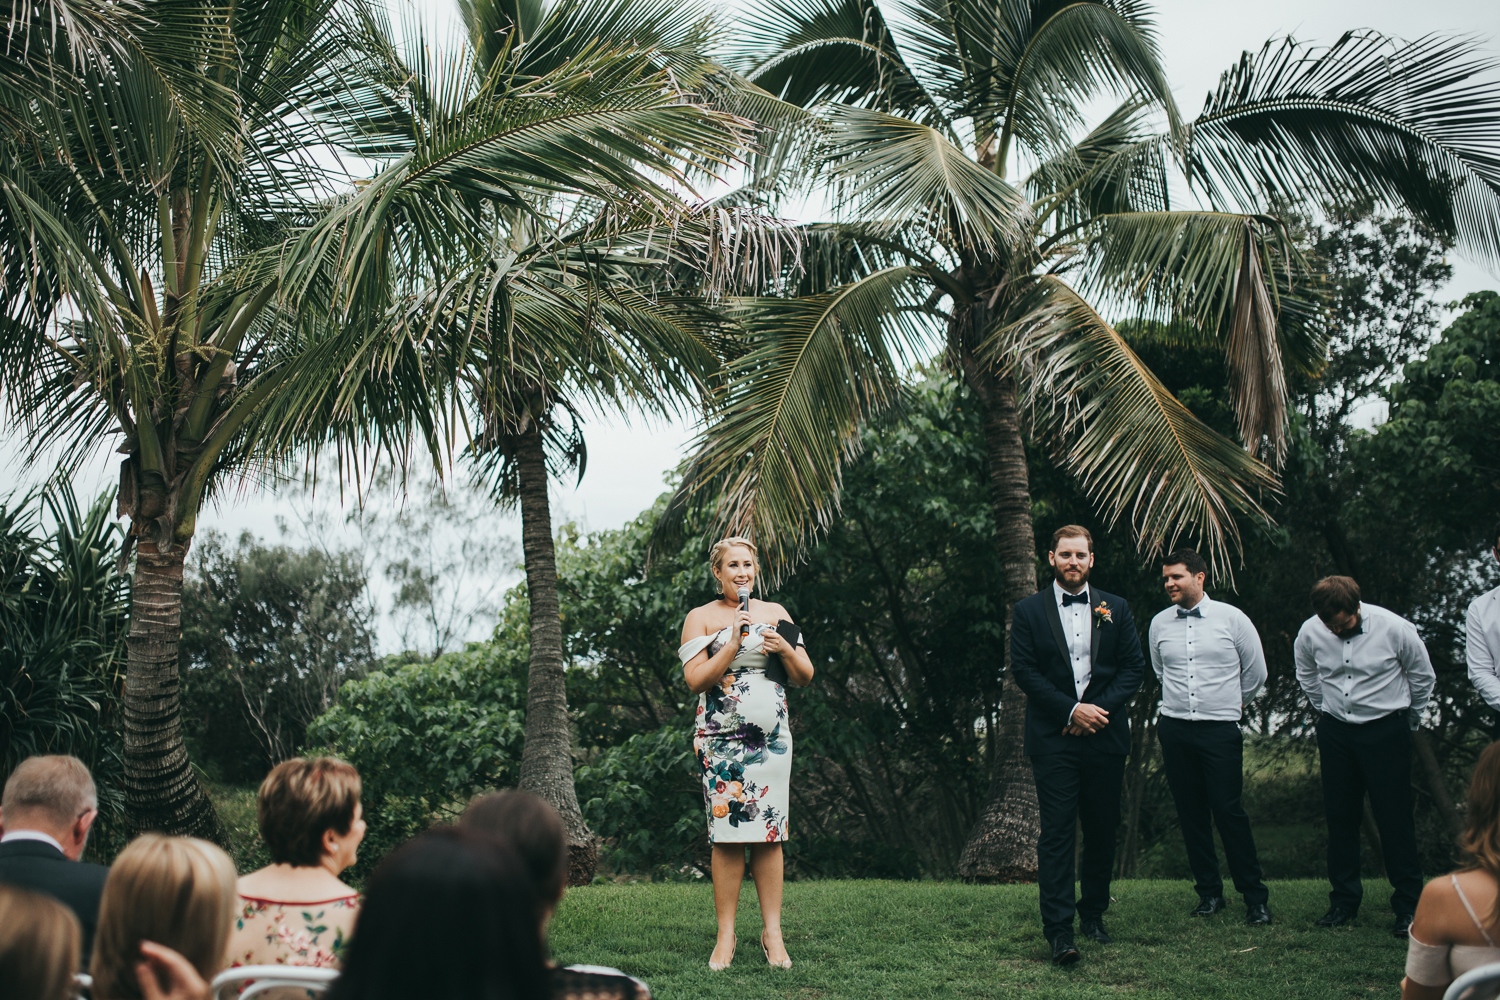 047-halcyon_house_byron_bay_wedding_photographer.jpg